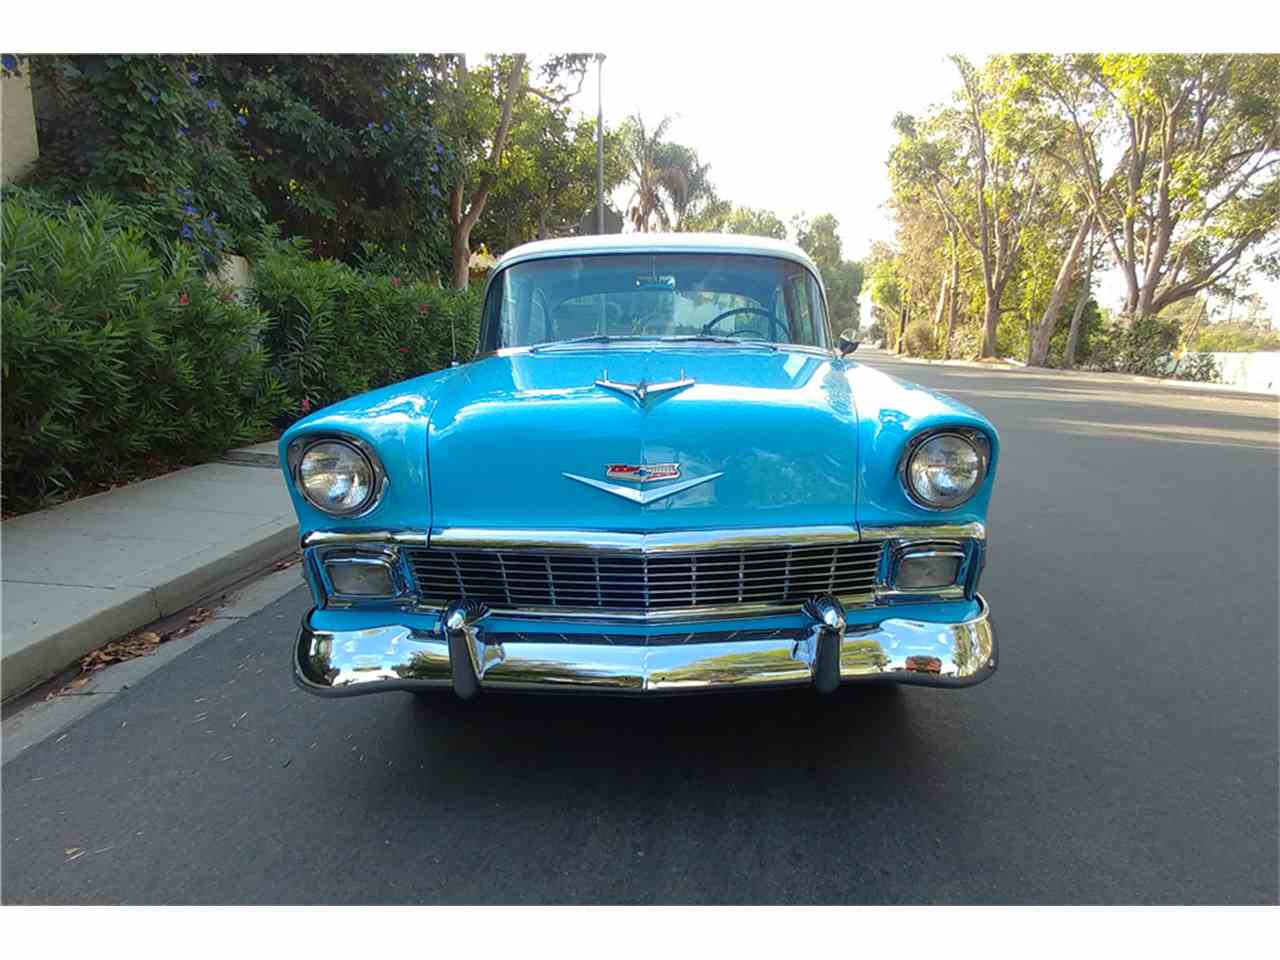 1956 chevrolet bel air for sale classic car liquidators - 1956 Chevrolet Bel Air Cc 1024380